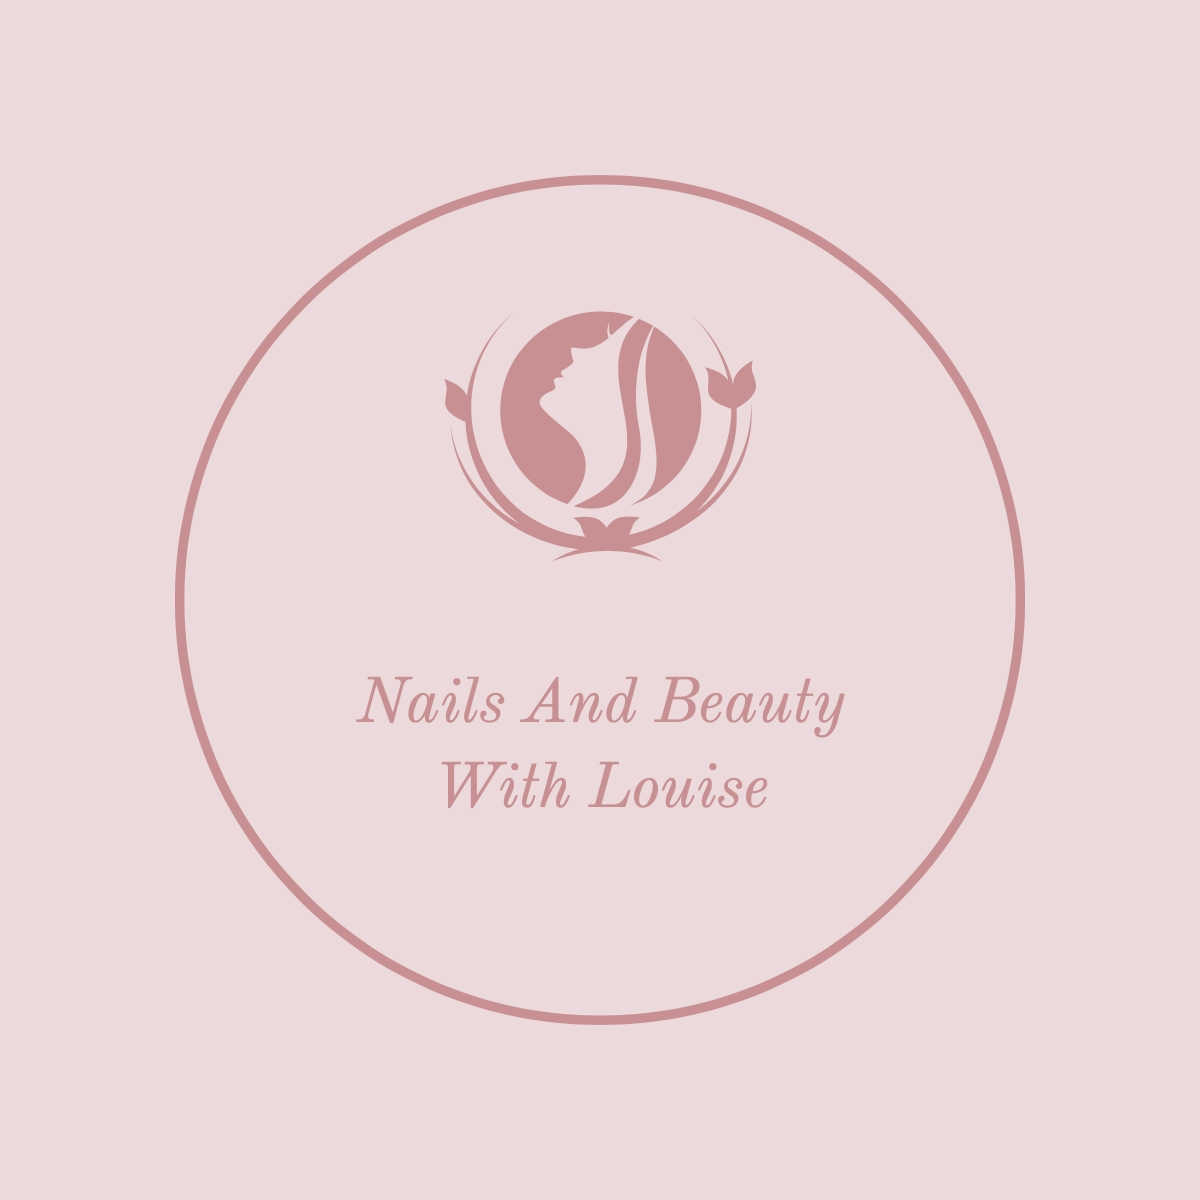 Nails and Beauty with Louise